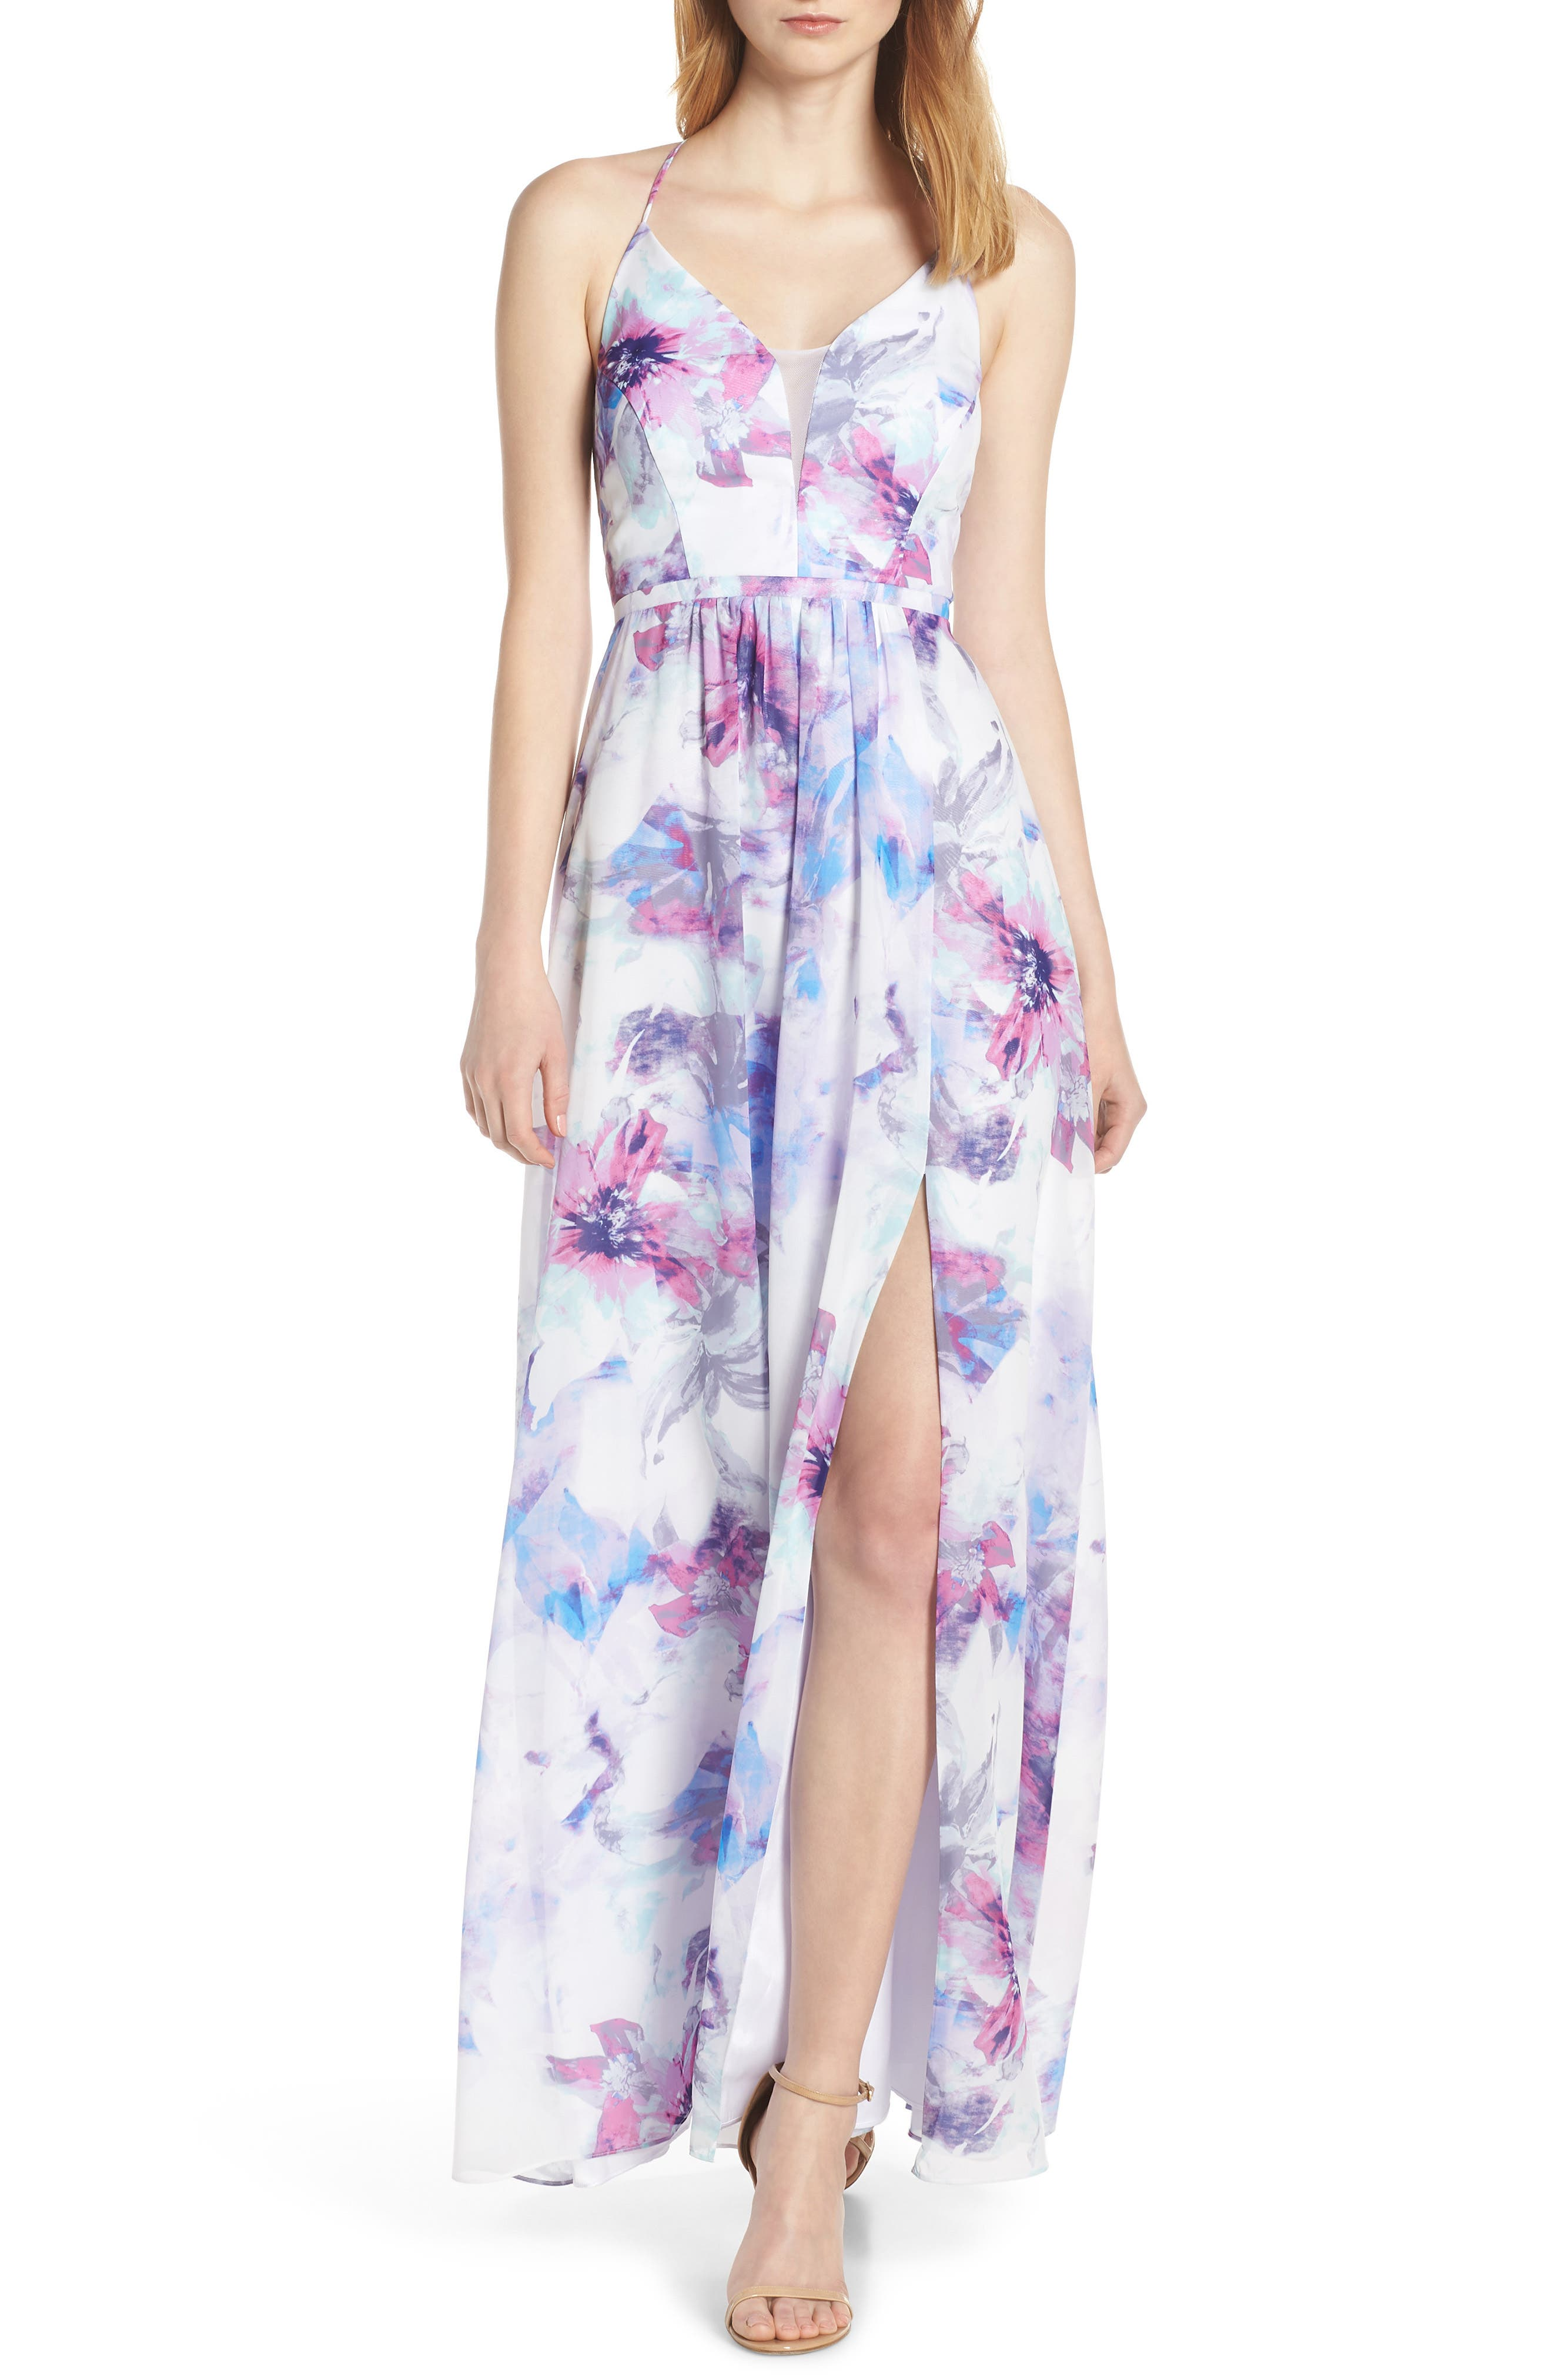 Morgan & Co. Floral Print Strappy Back Chiffon Evening Dress, Blue